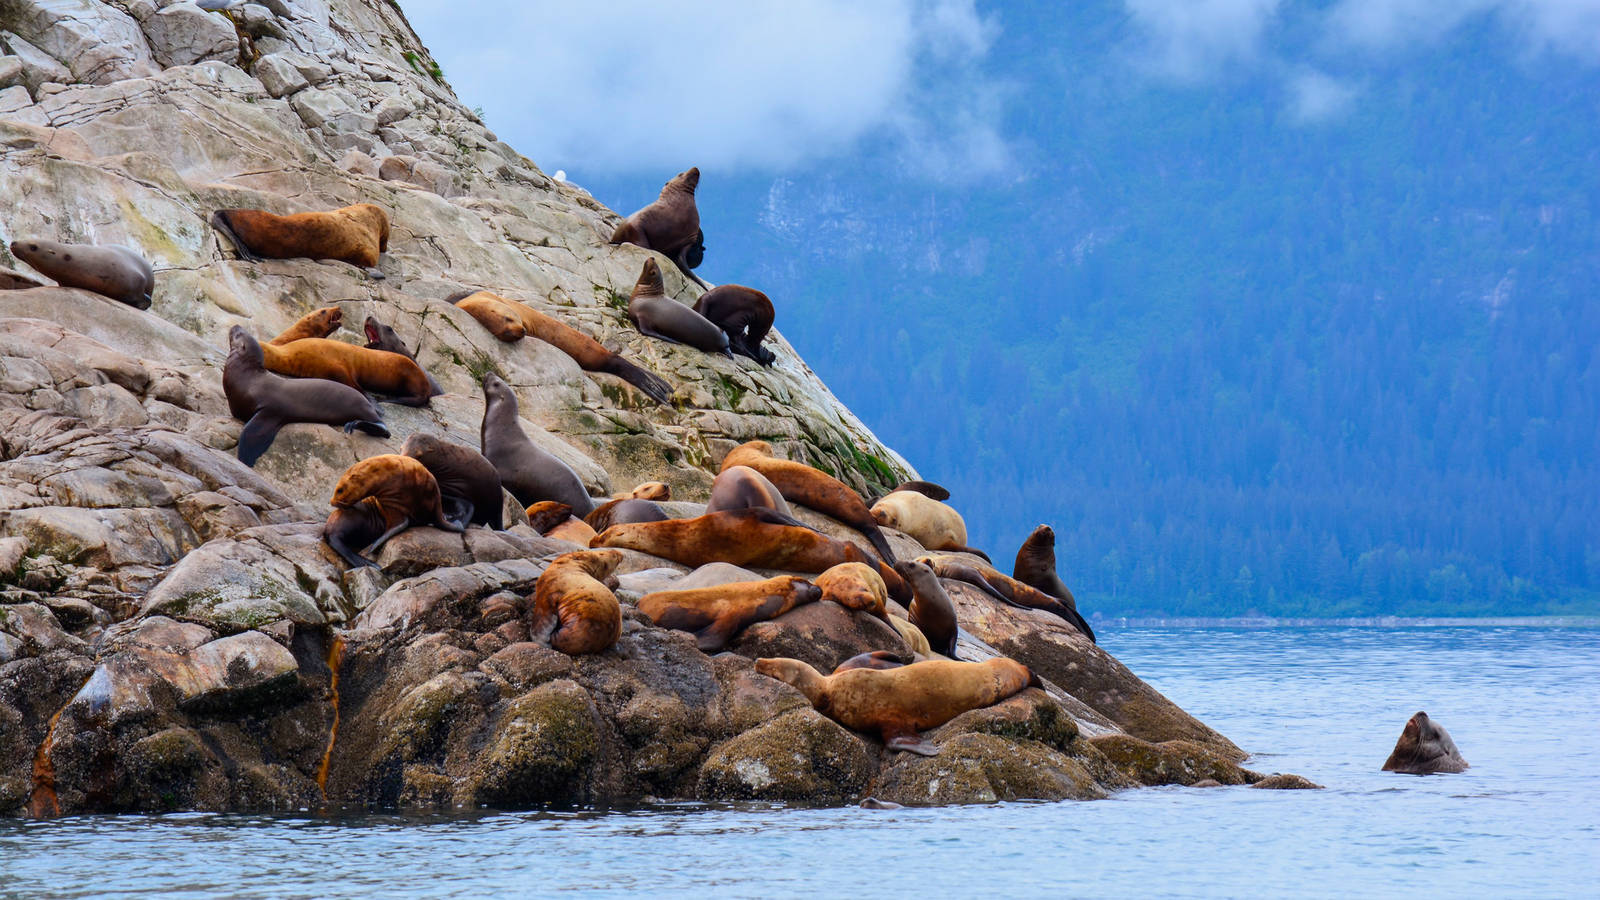 ac8a426060c Endangered Steller sea lions bask on a rocky incline at South Marble Island  in Glacier Bay National Park. Photo © Bedfordchandlerphoto Dreamstime.